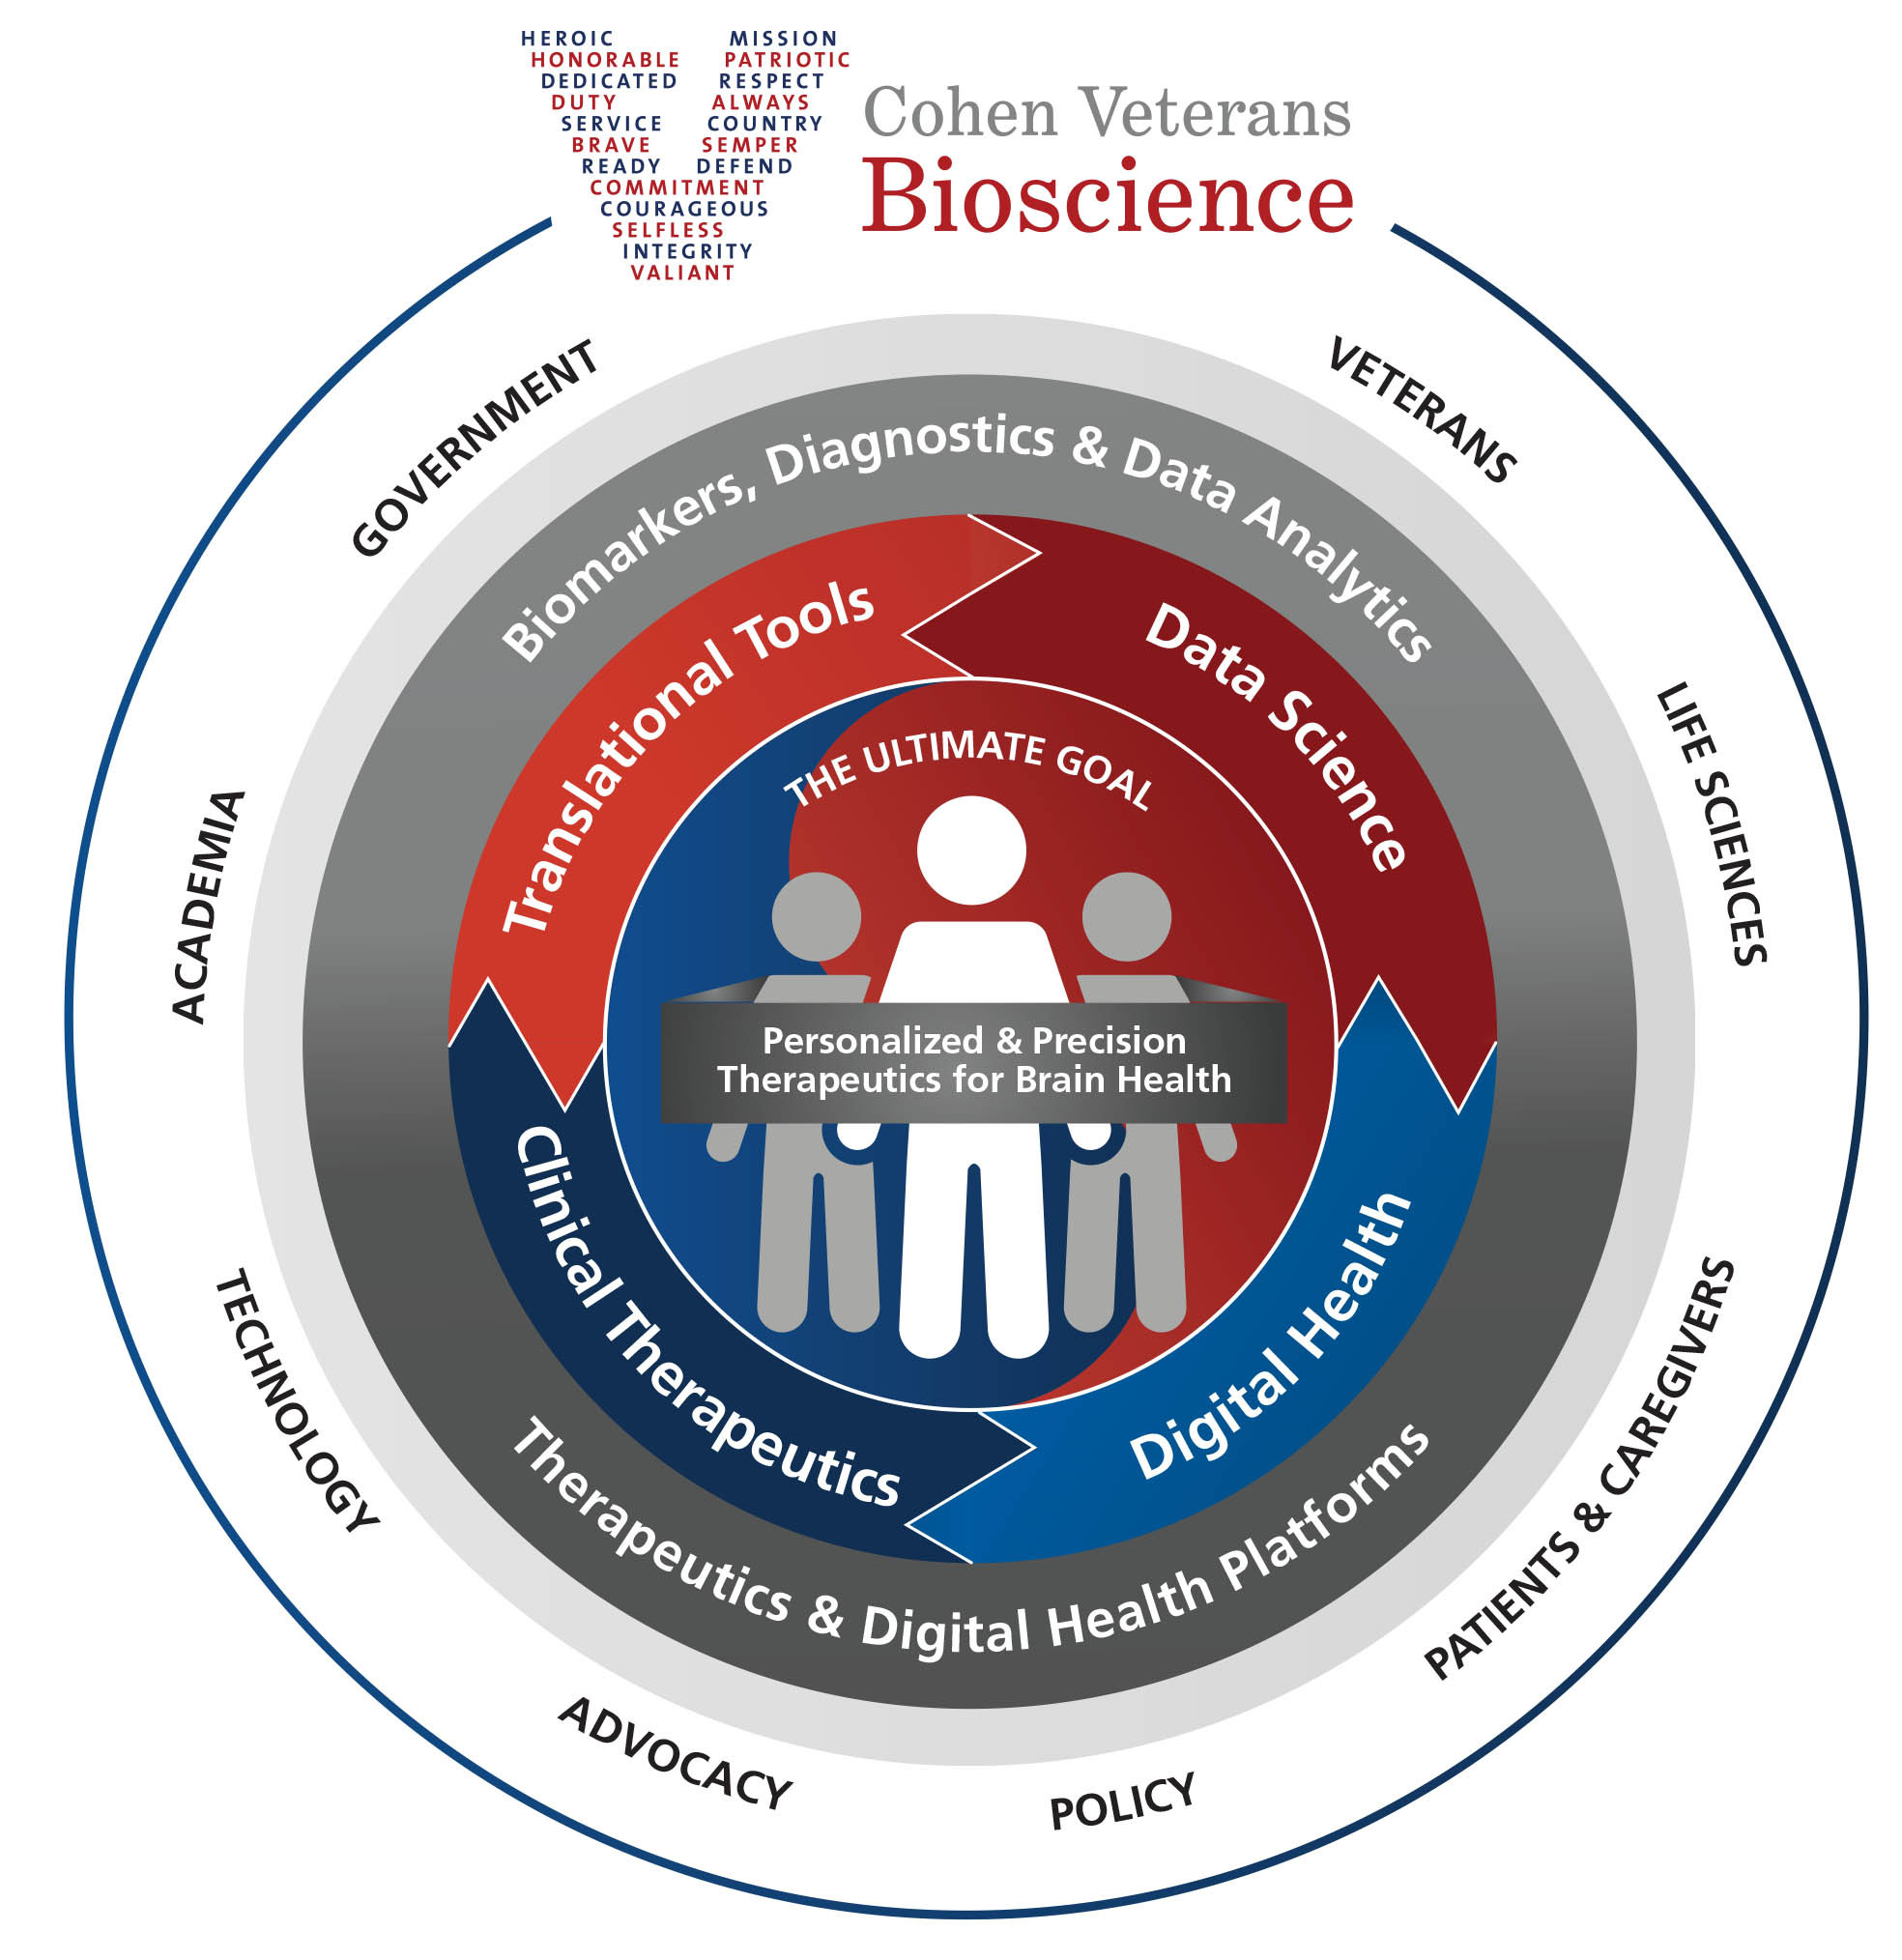 Our Approach - Cohen Veterans Bioscience